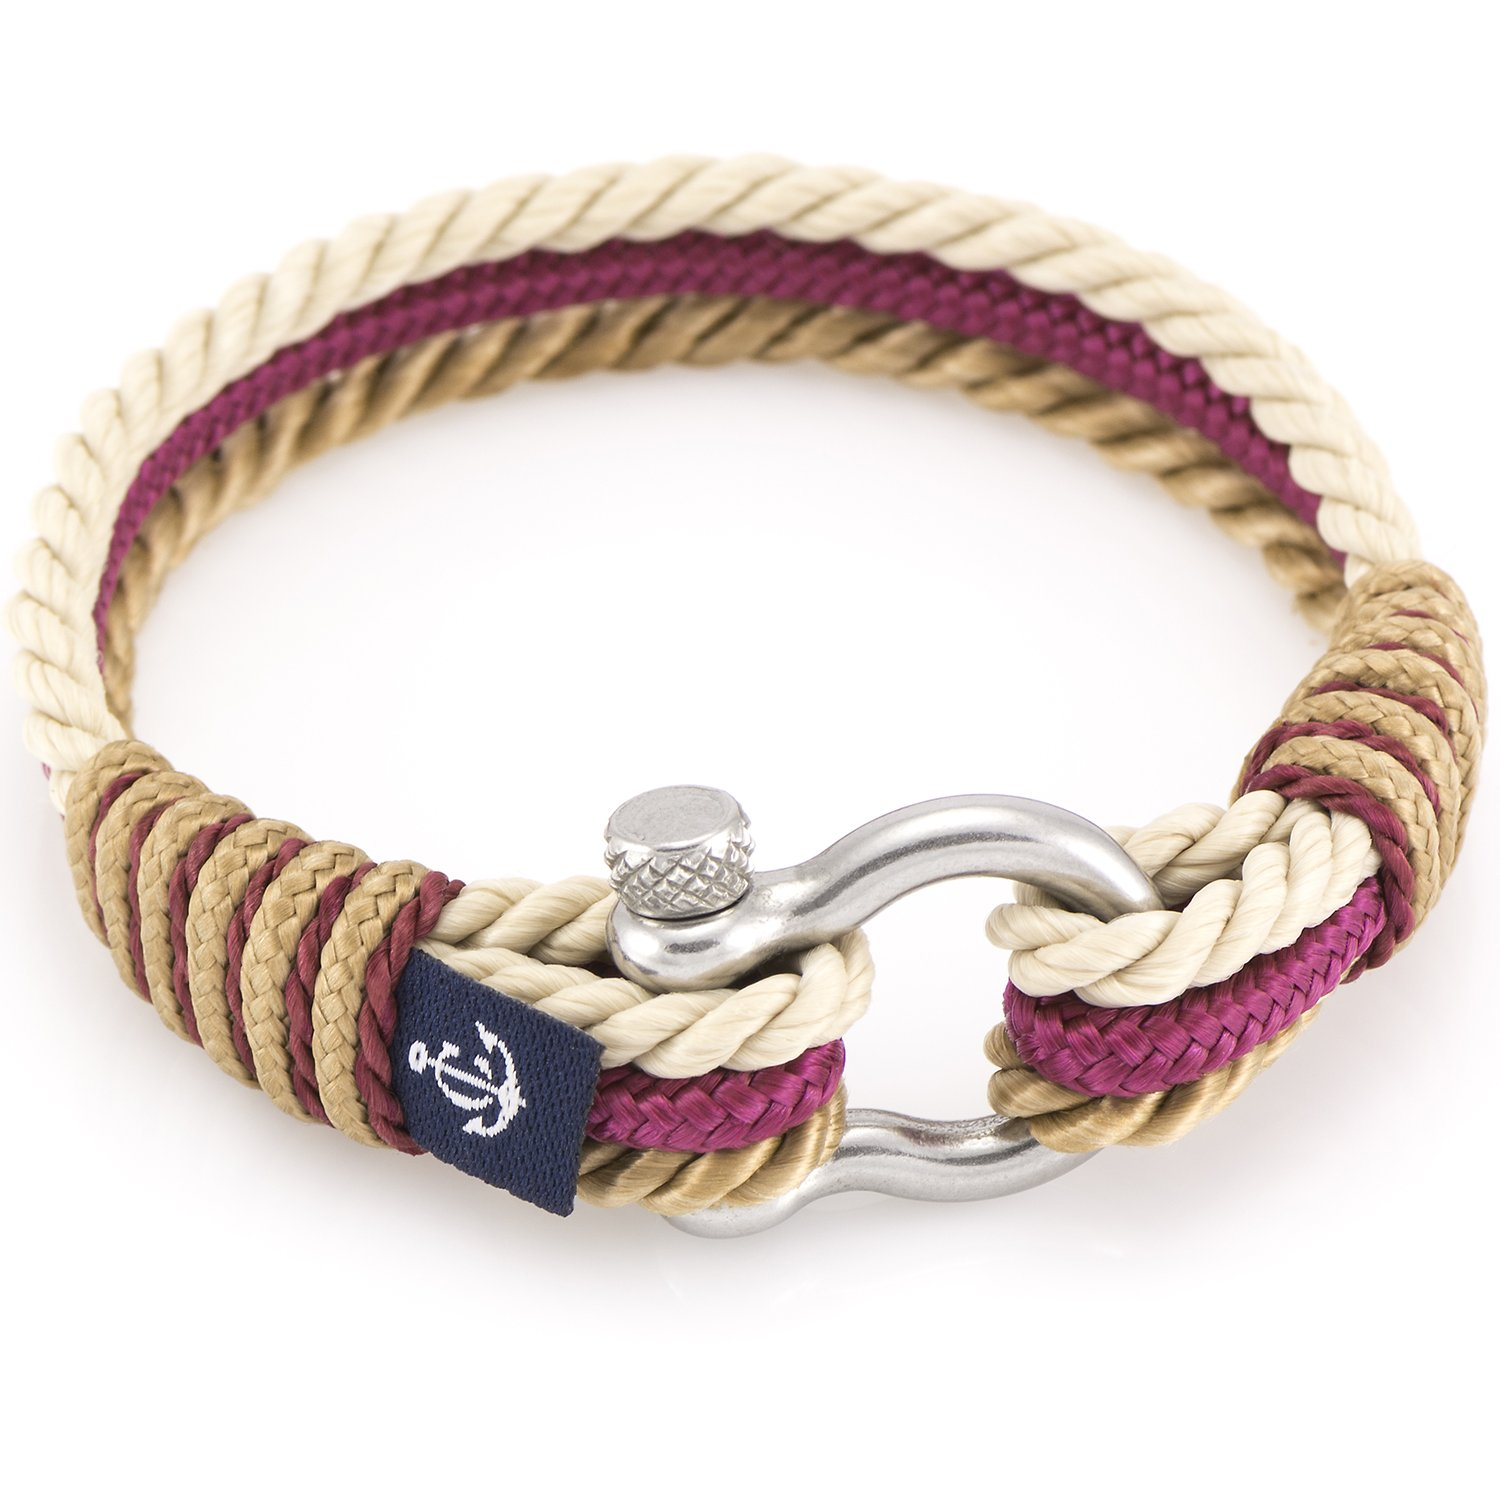 bk catch coasters nautical men mens collections rope sailormadeusa double bracelet s